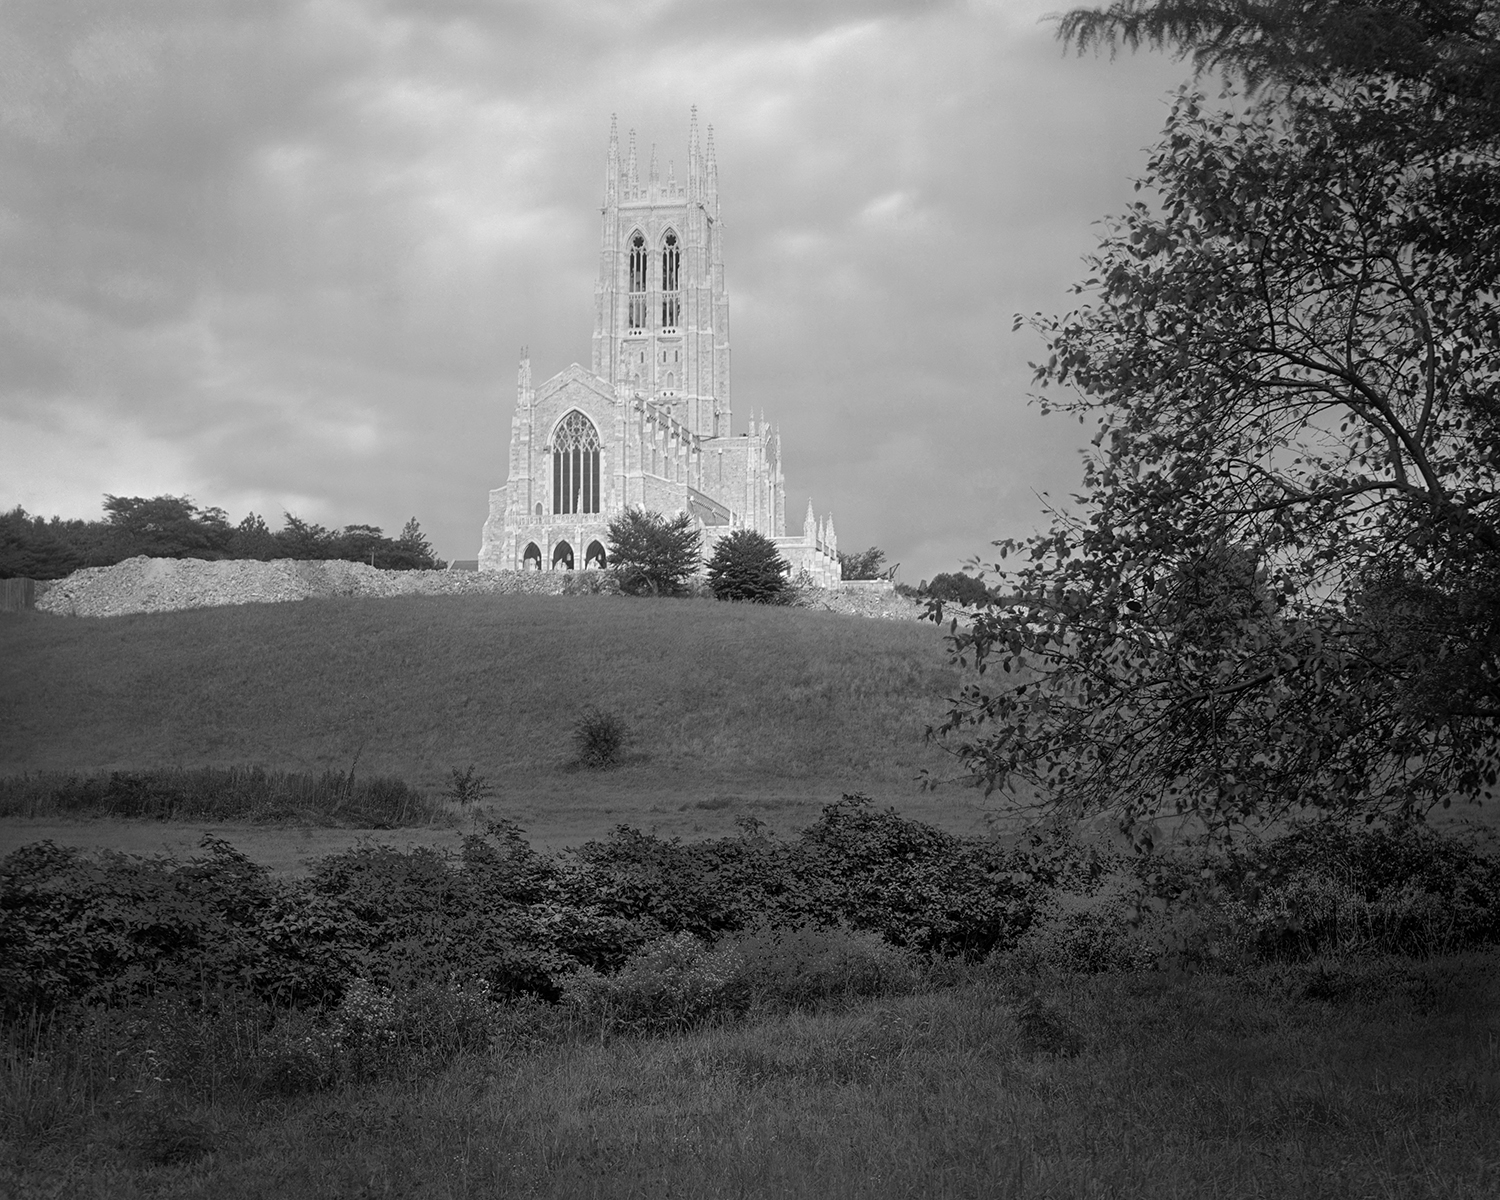 Figure 4: View of Bryn Athyn Cathedral from the valley (c. 1919).